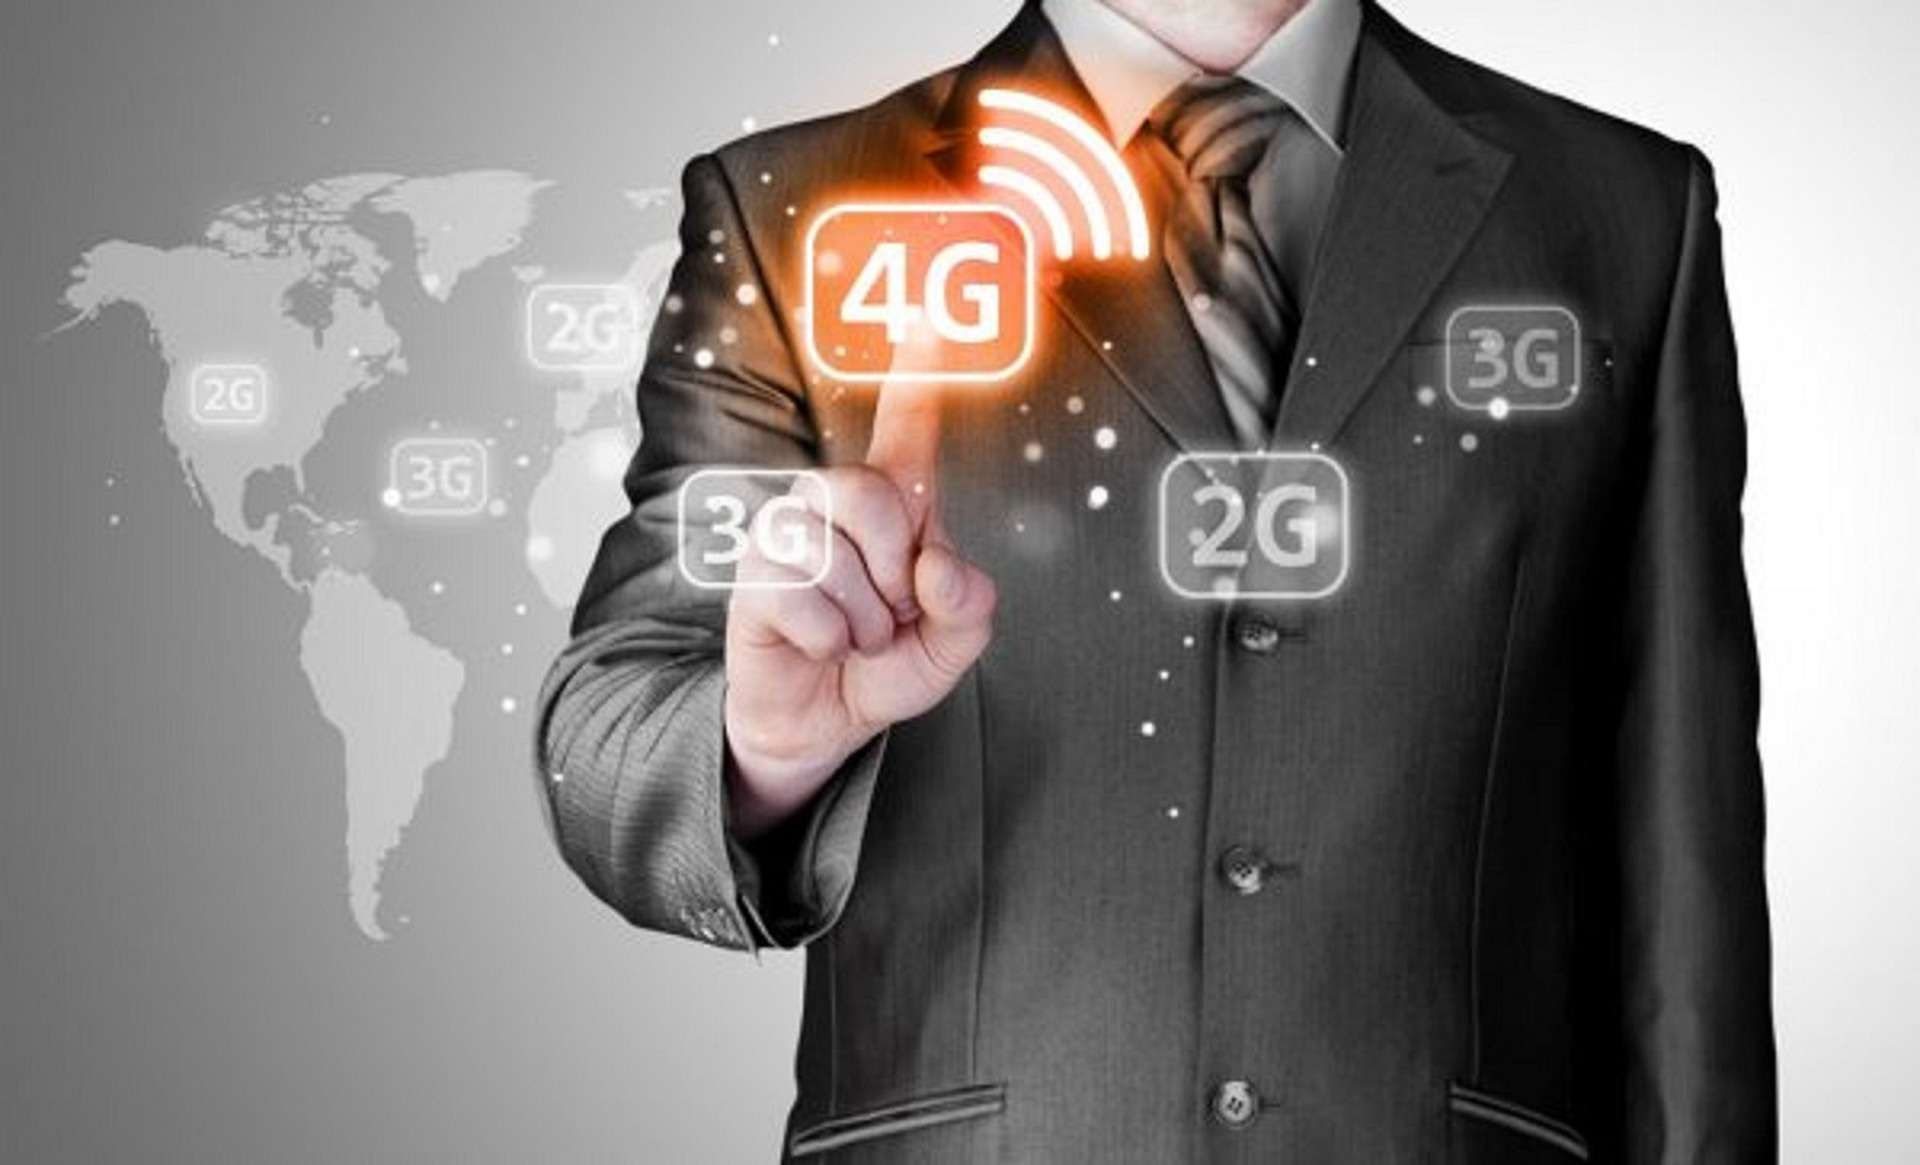 3G, 4G, EDGE, 5G: What you need to know about mobile networks - Times of India